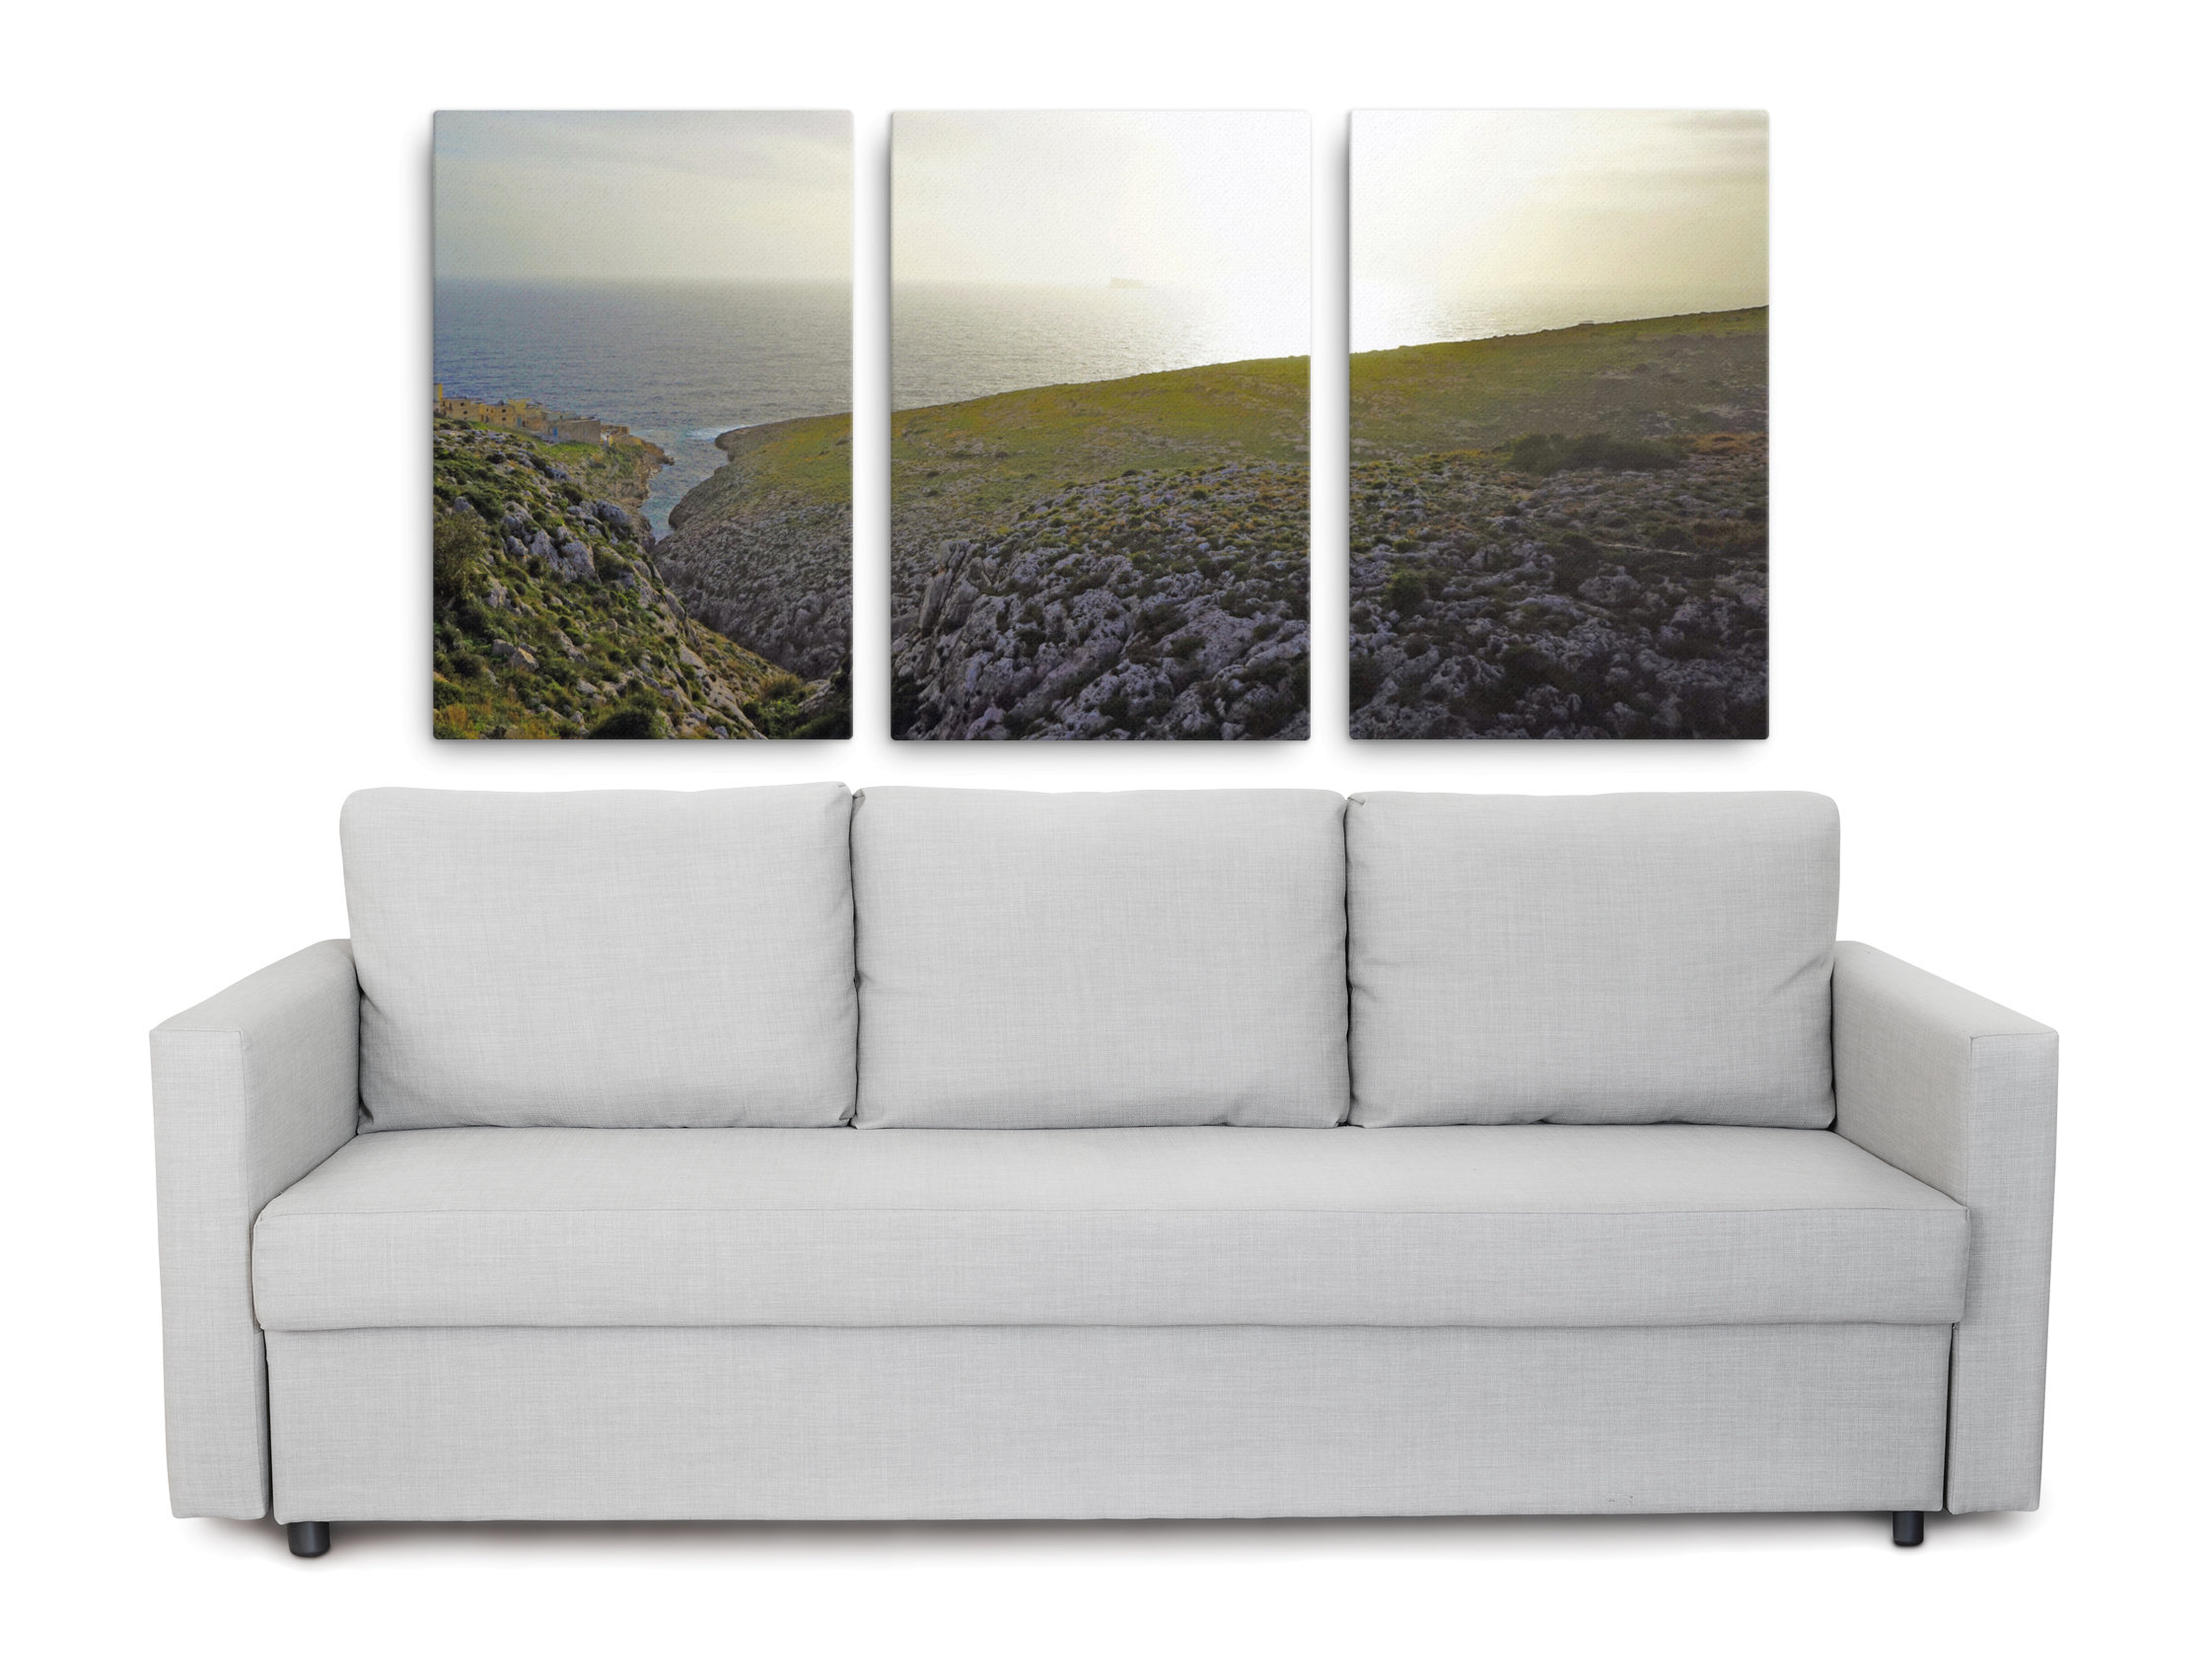 Picture of Filfla island, Malta, printed on canvas as Triptych wall art